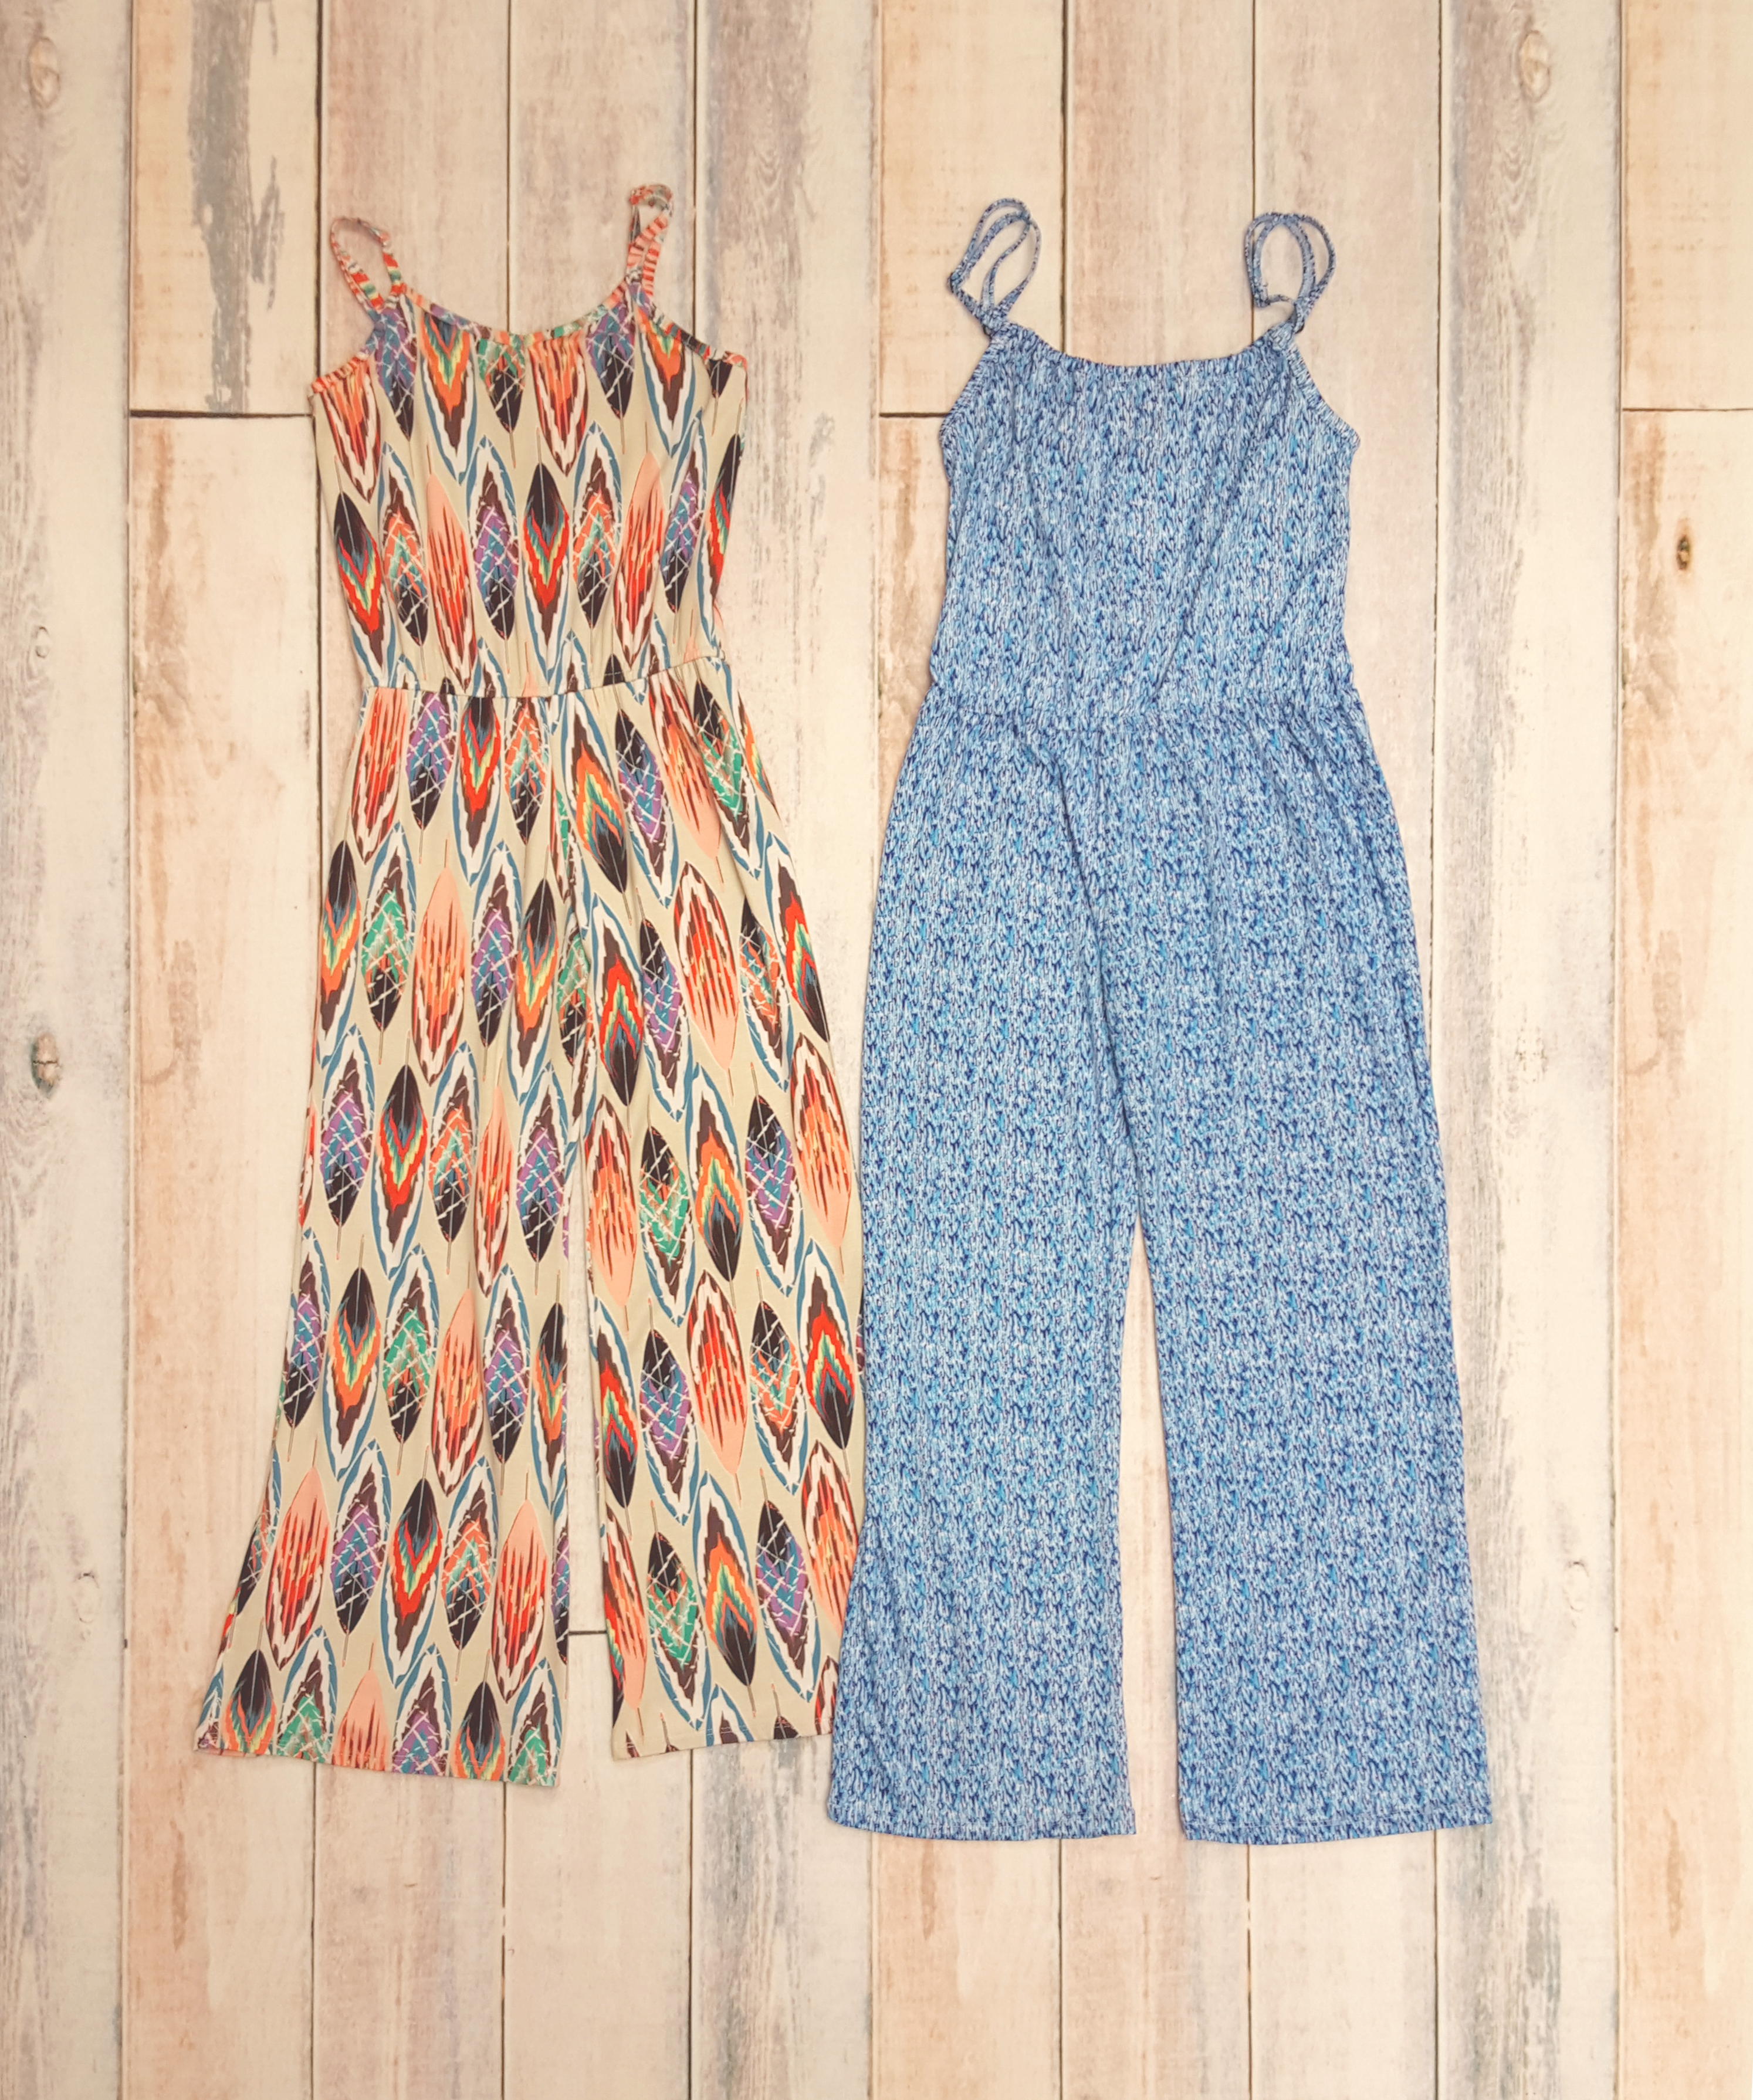 cute jumpsuits from Area Code 407 and TruLuv